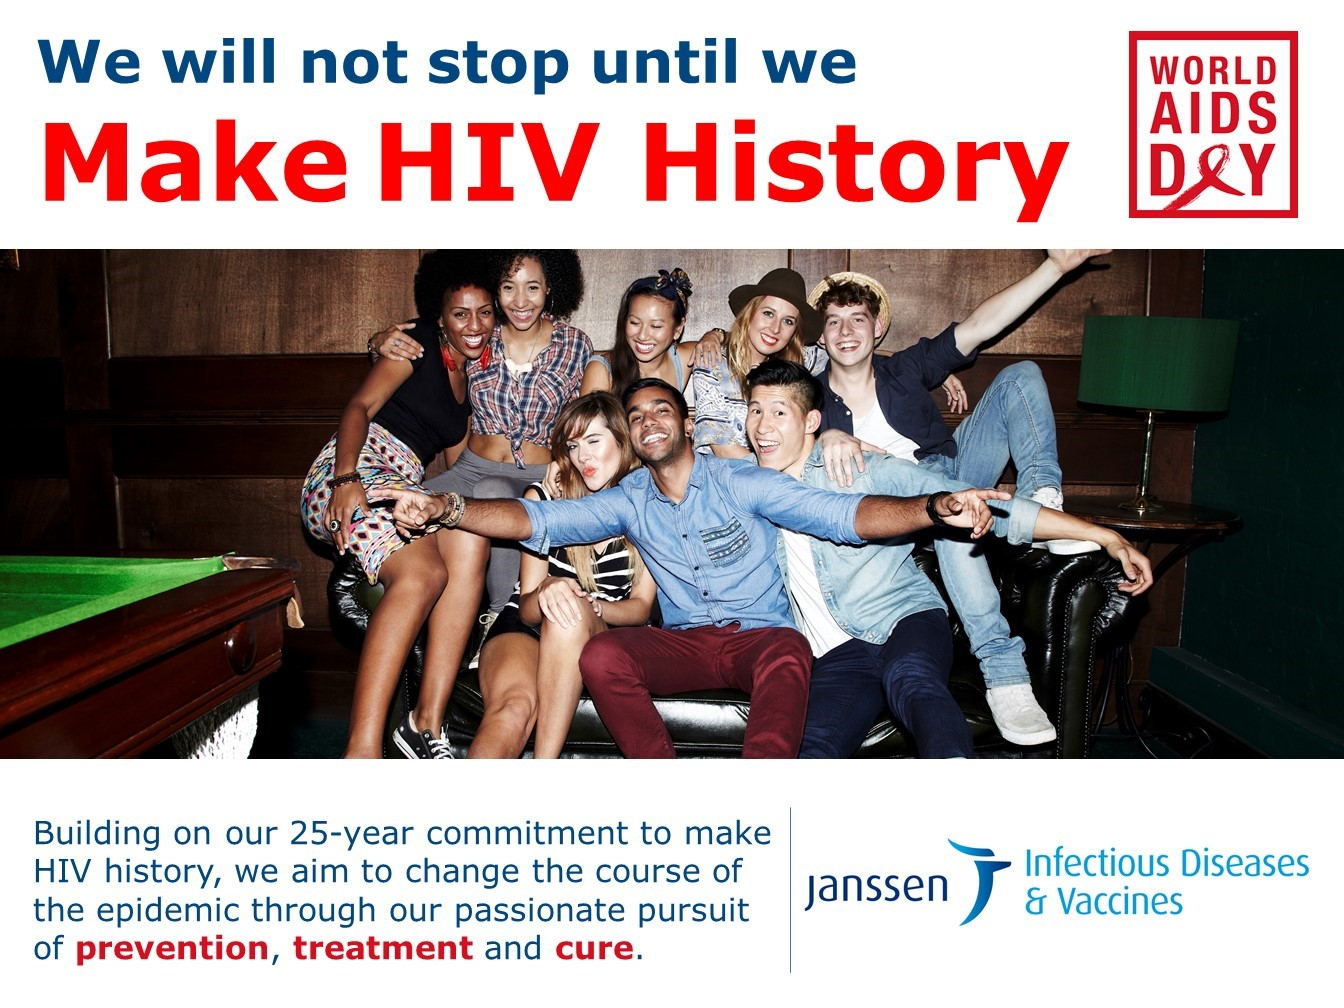 World Aids Day commitment Janssen